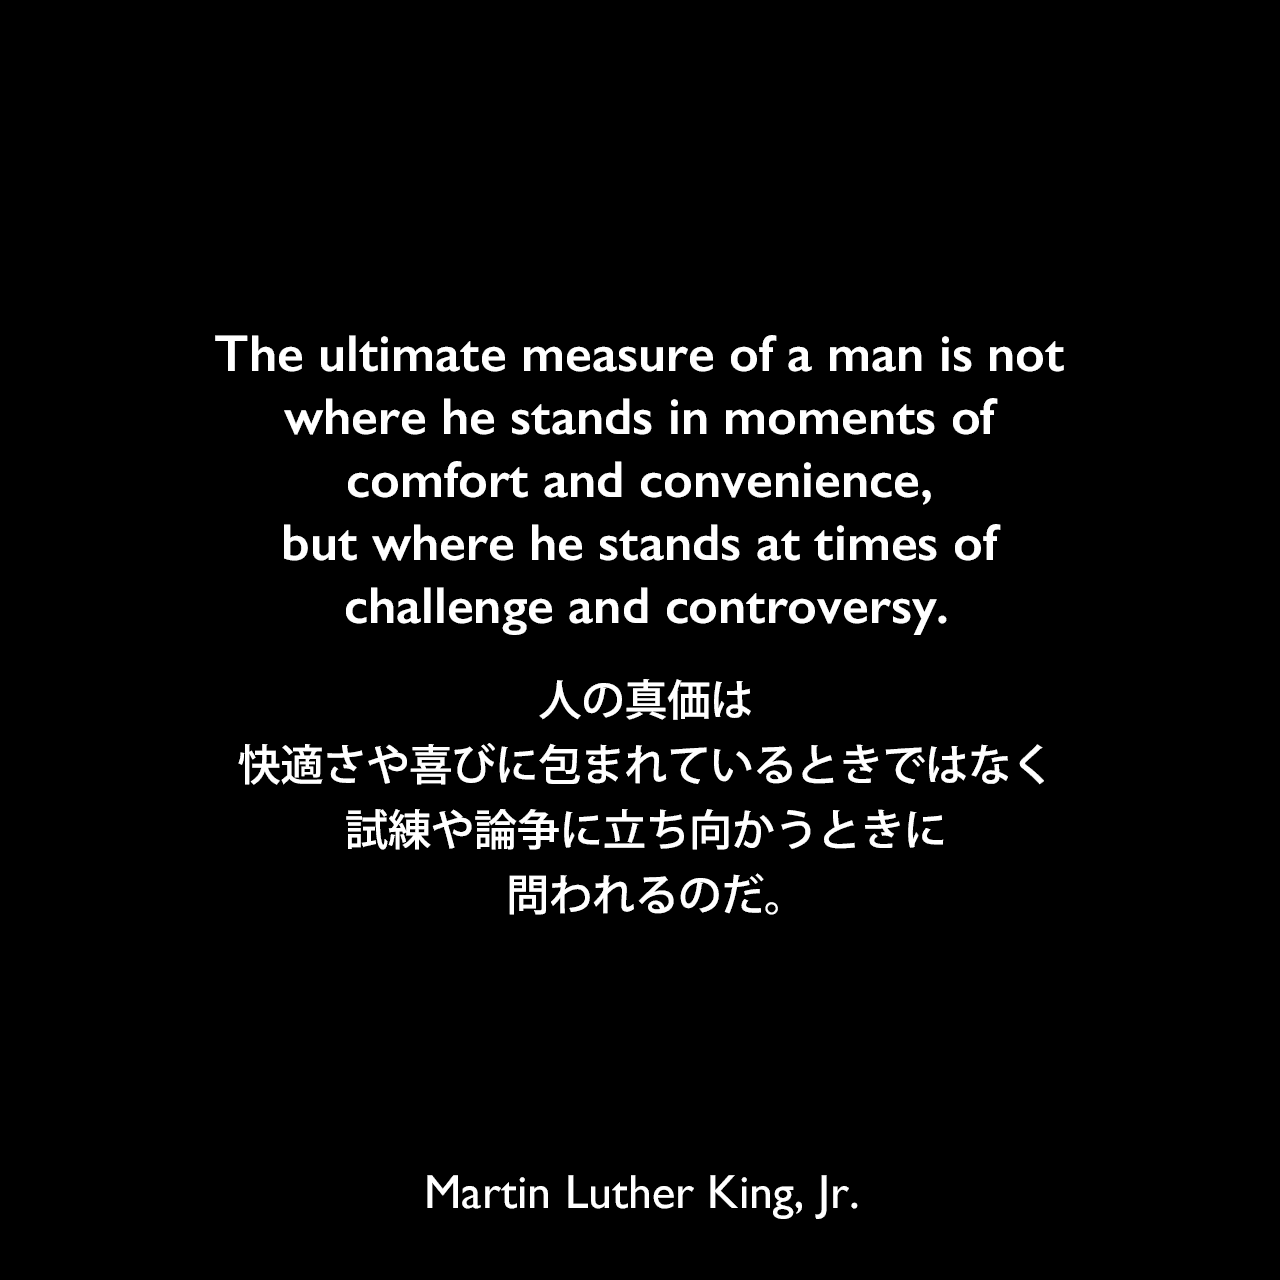 The ultimate measure of a man is not where he stands in moments of comfort and convenience, but where he stands at times of challenge and controversy.人の真価は、快適さや喜びに包まれているときではなく、試練や論争に立ち向かうときに問われるのだ。- マーティン・ルーサー・キング・ジュニアによる本「Strength to Love」より